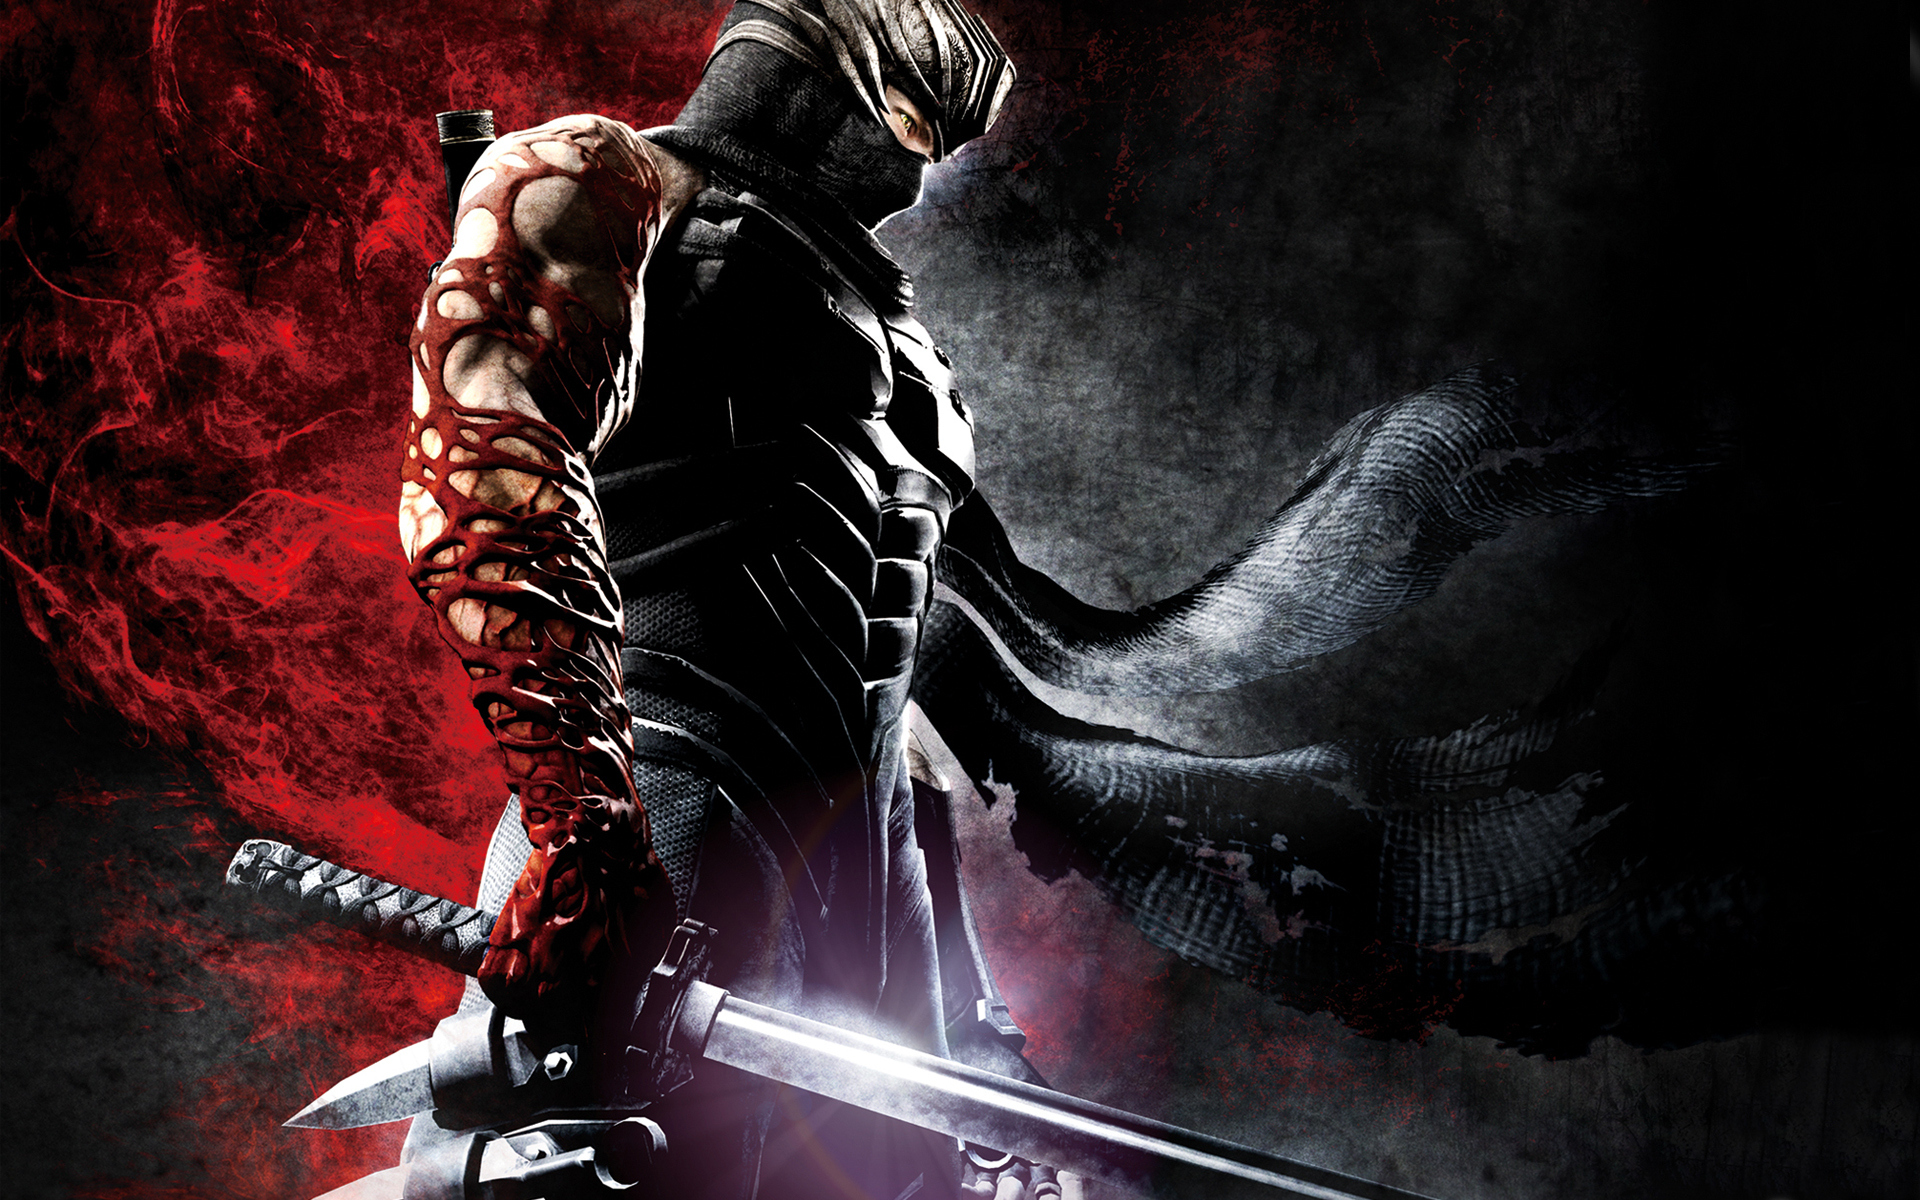 ninja gaiden wallpapers for desktop - photo #1